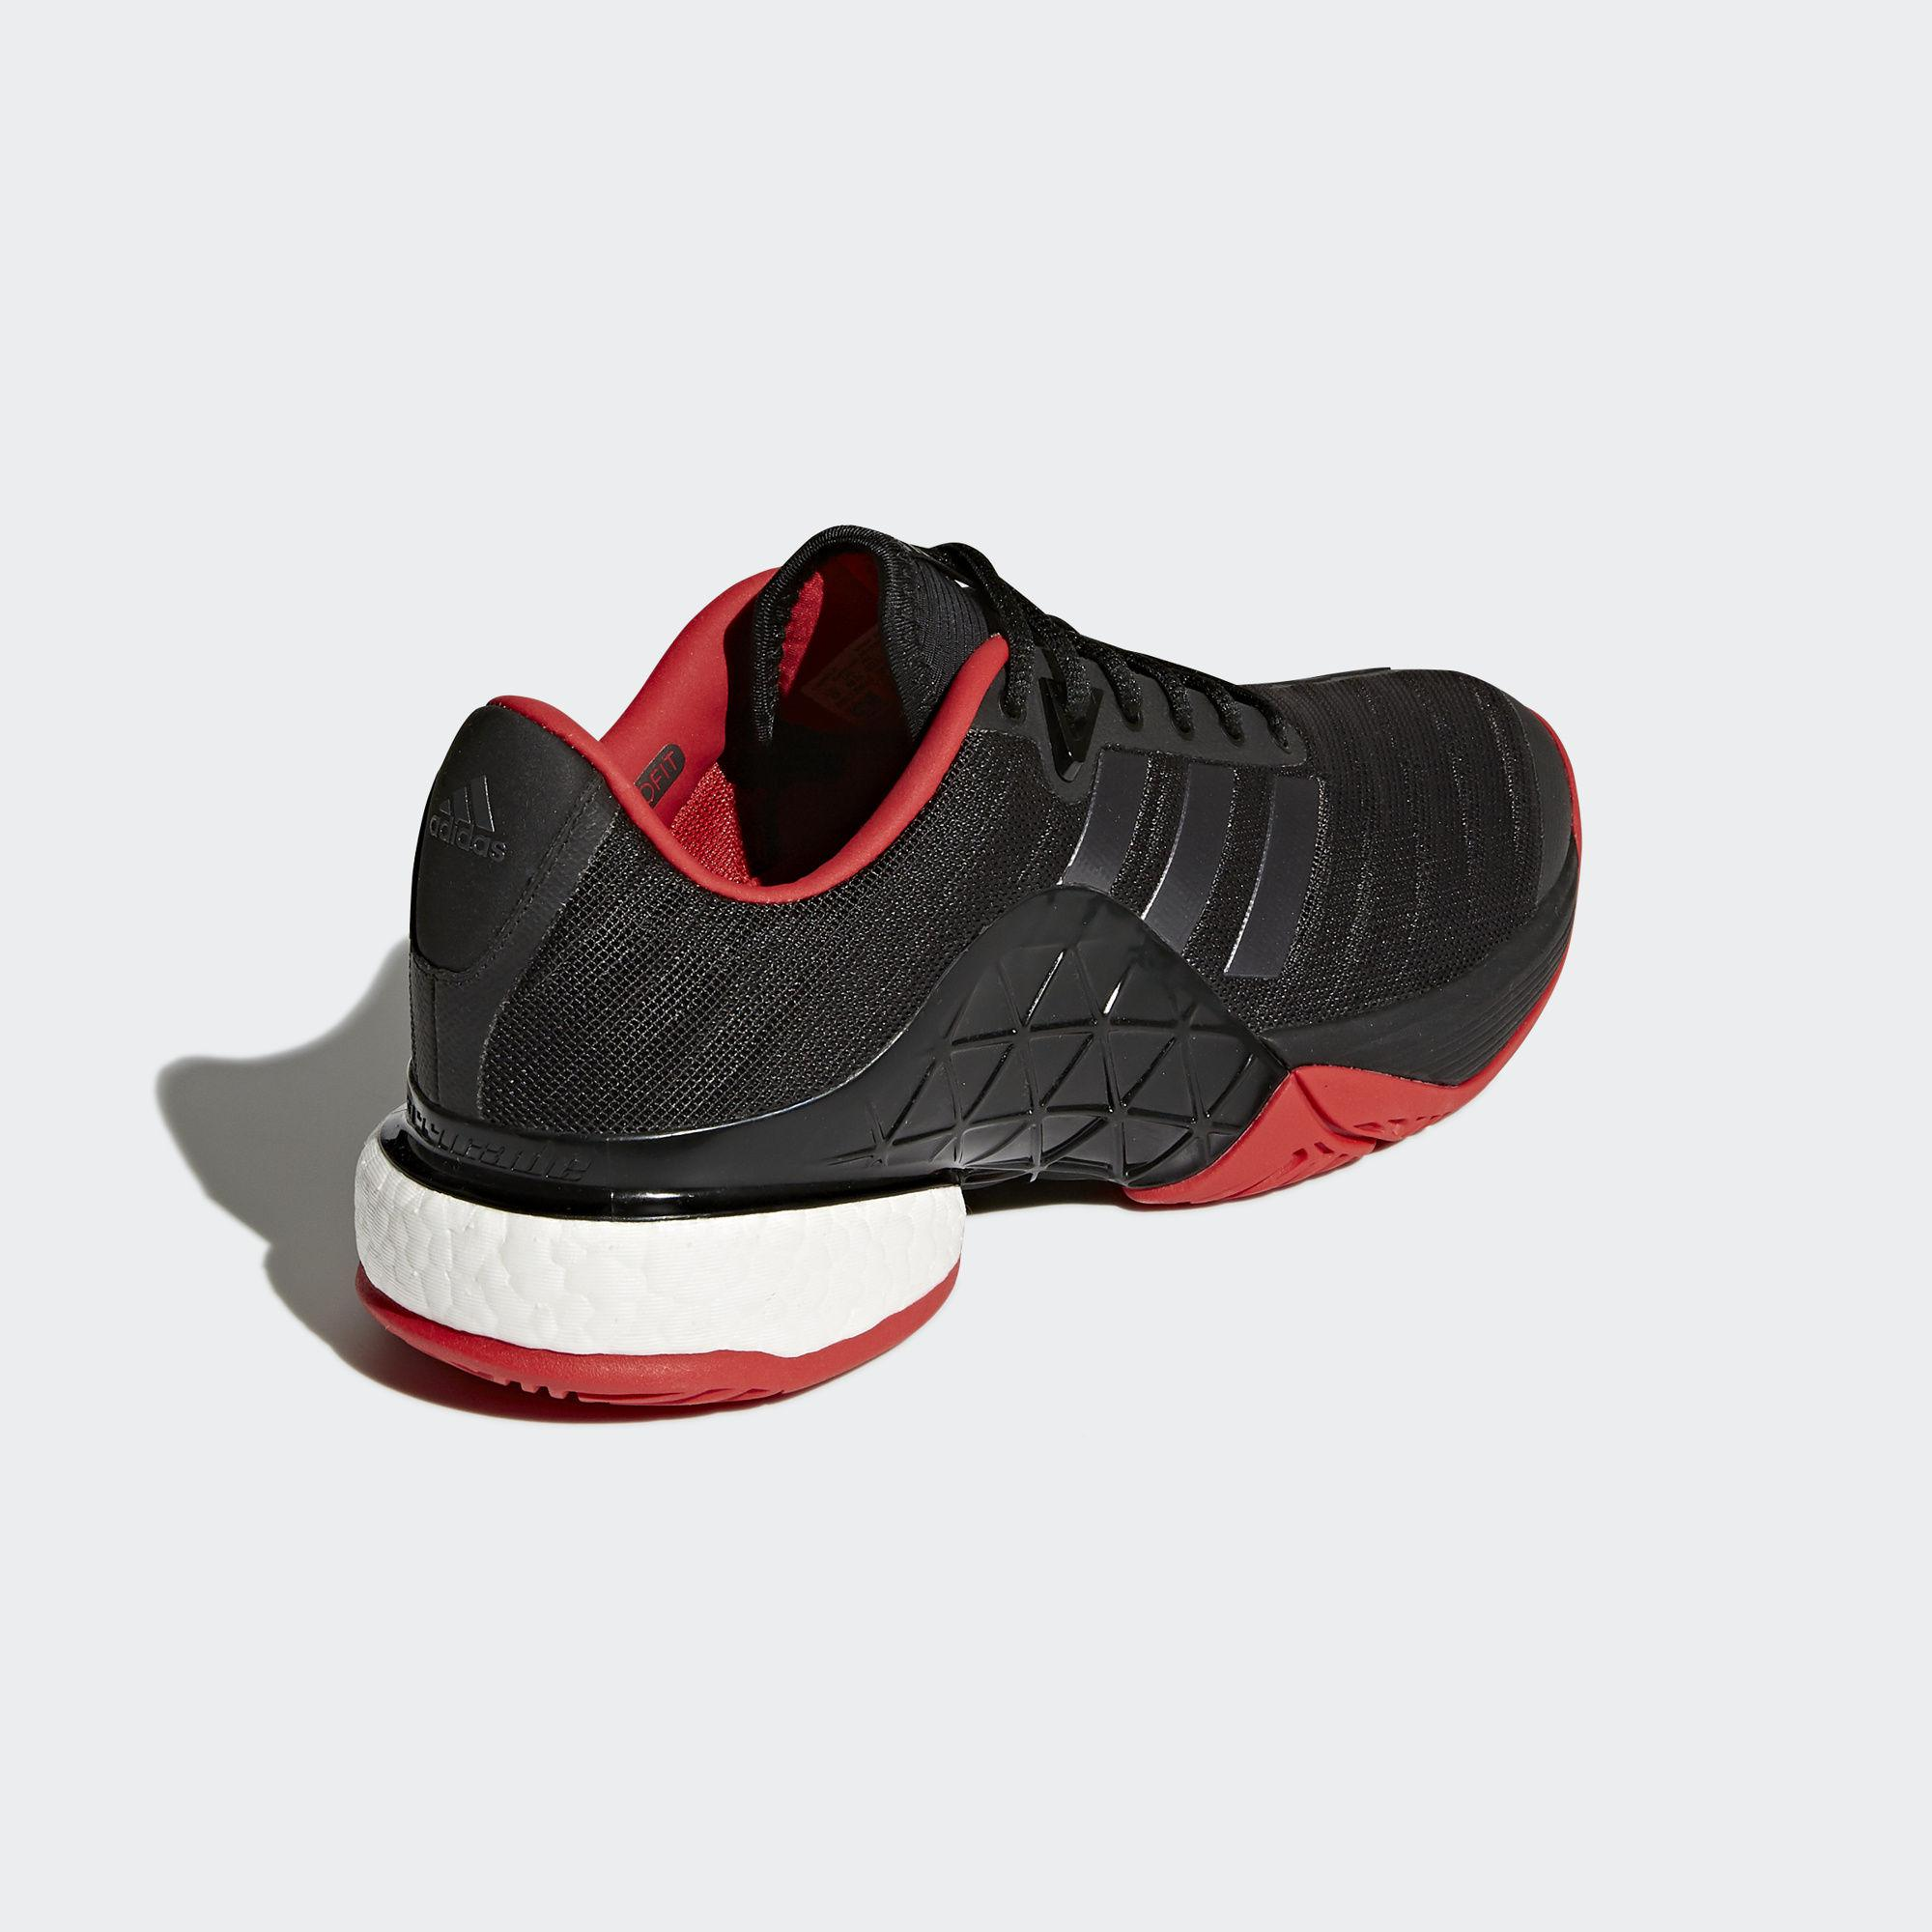 super popular 9ad31 44fe9 Adidas Mens Barricade Boost 2018 Tennis Shoes - Core Black Red